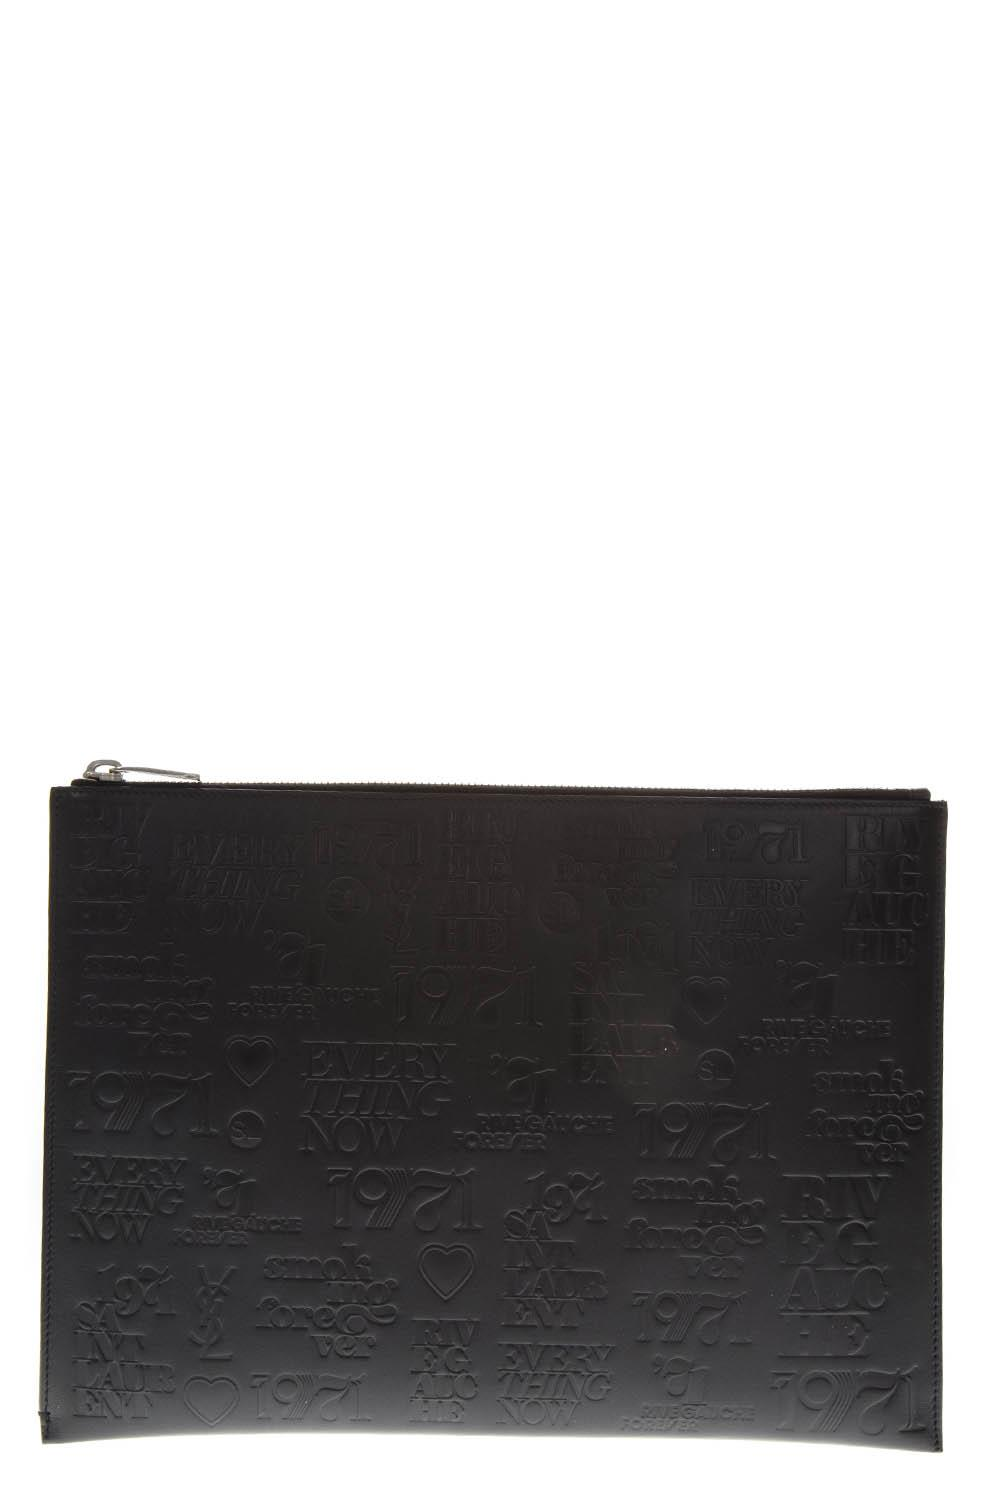 e0ac5a1dd4 TABLET HOLDER IN BLACK PRINTED LEATHER FW 2018